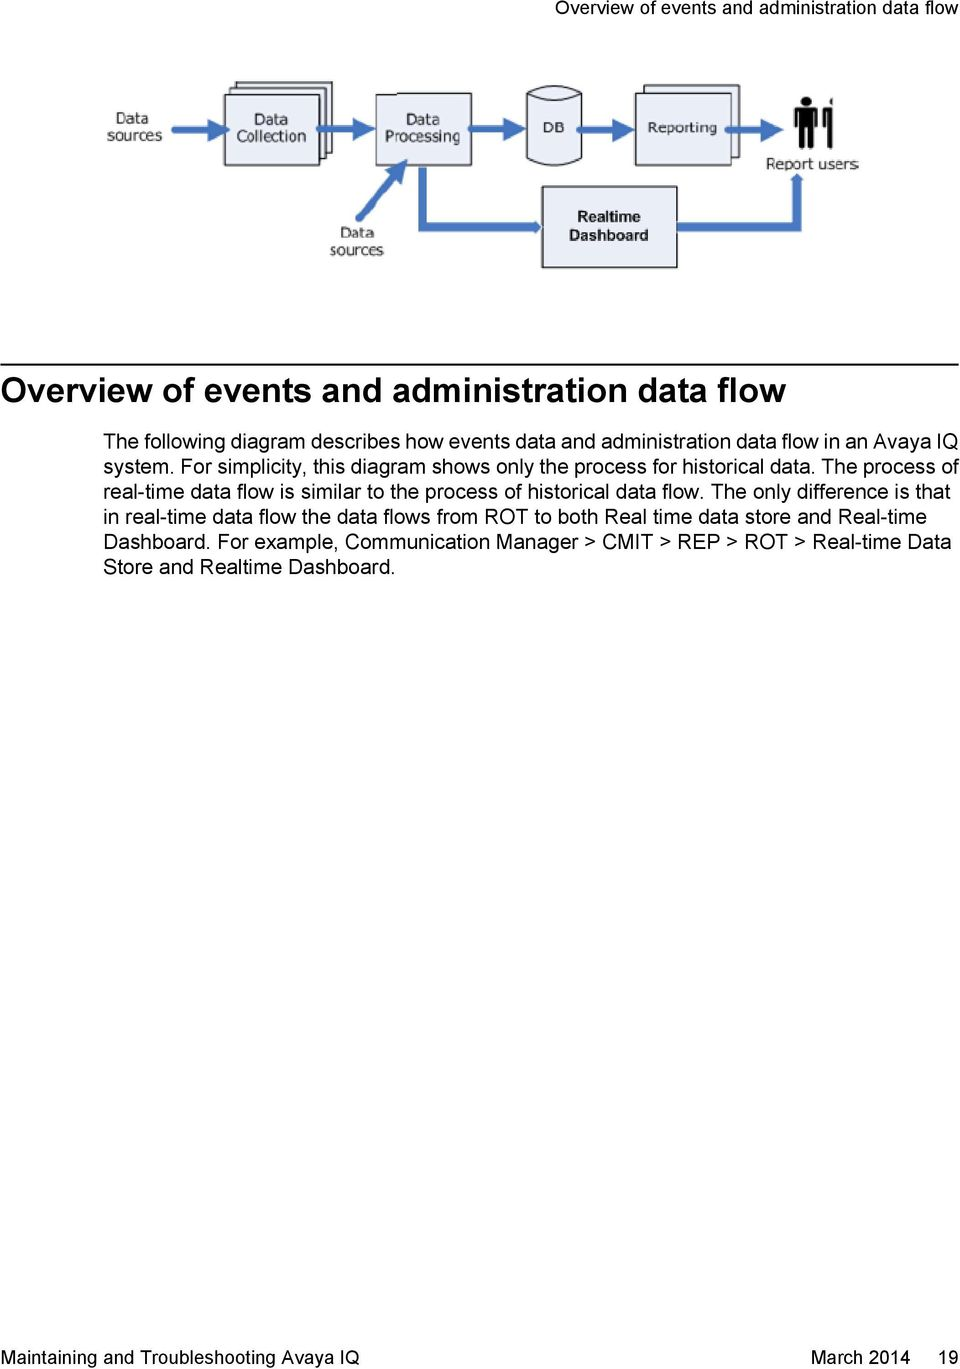 The process of real-time data flow is similar to the process of historical data flow.